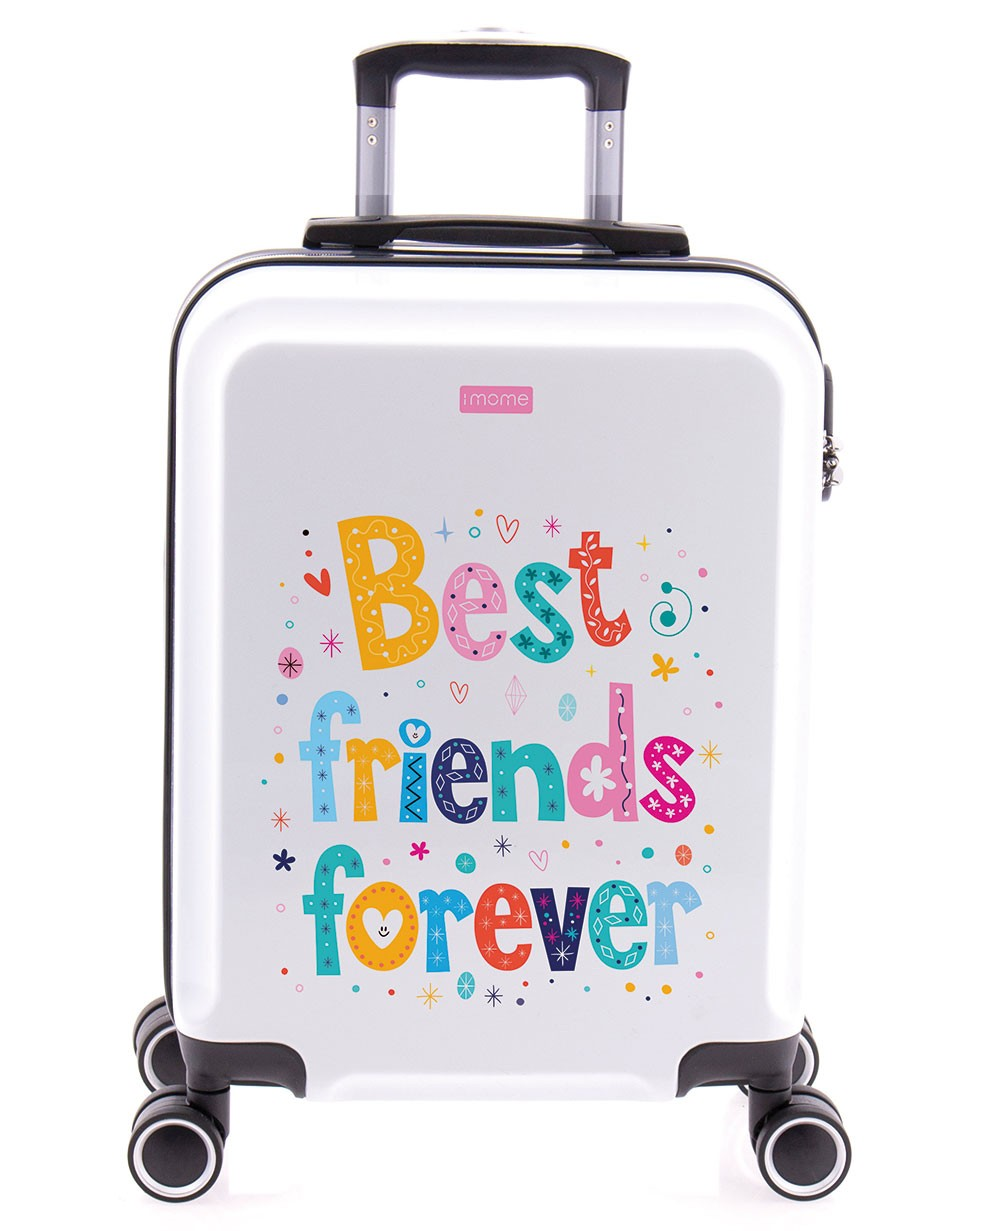 imome Cool Maleta De Mano Best Fiends Forever Amigas Blanca (Foto )